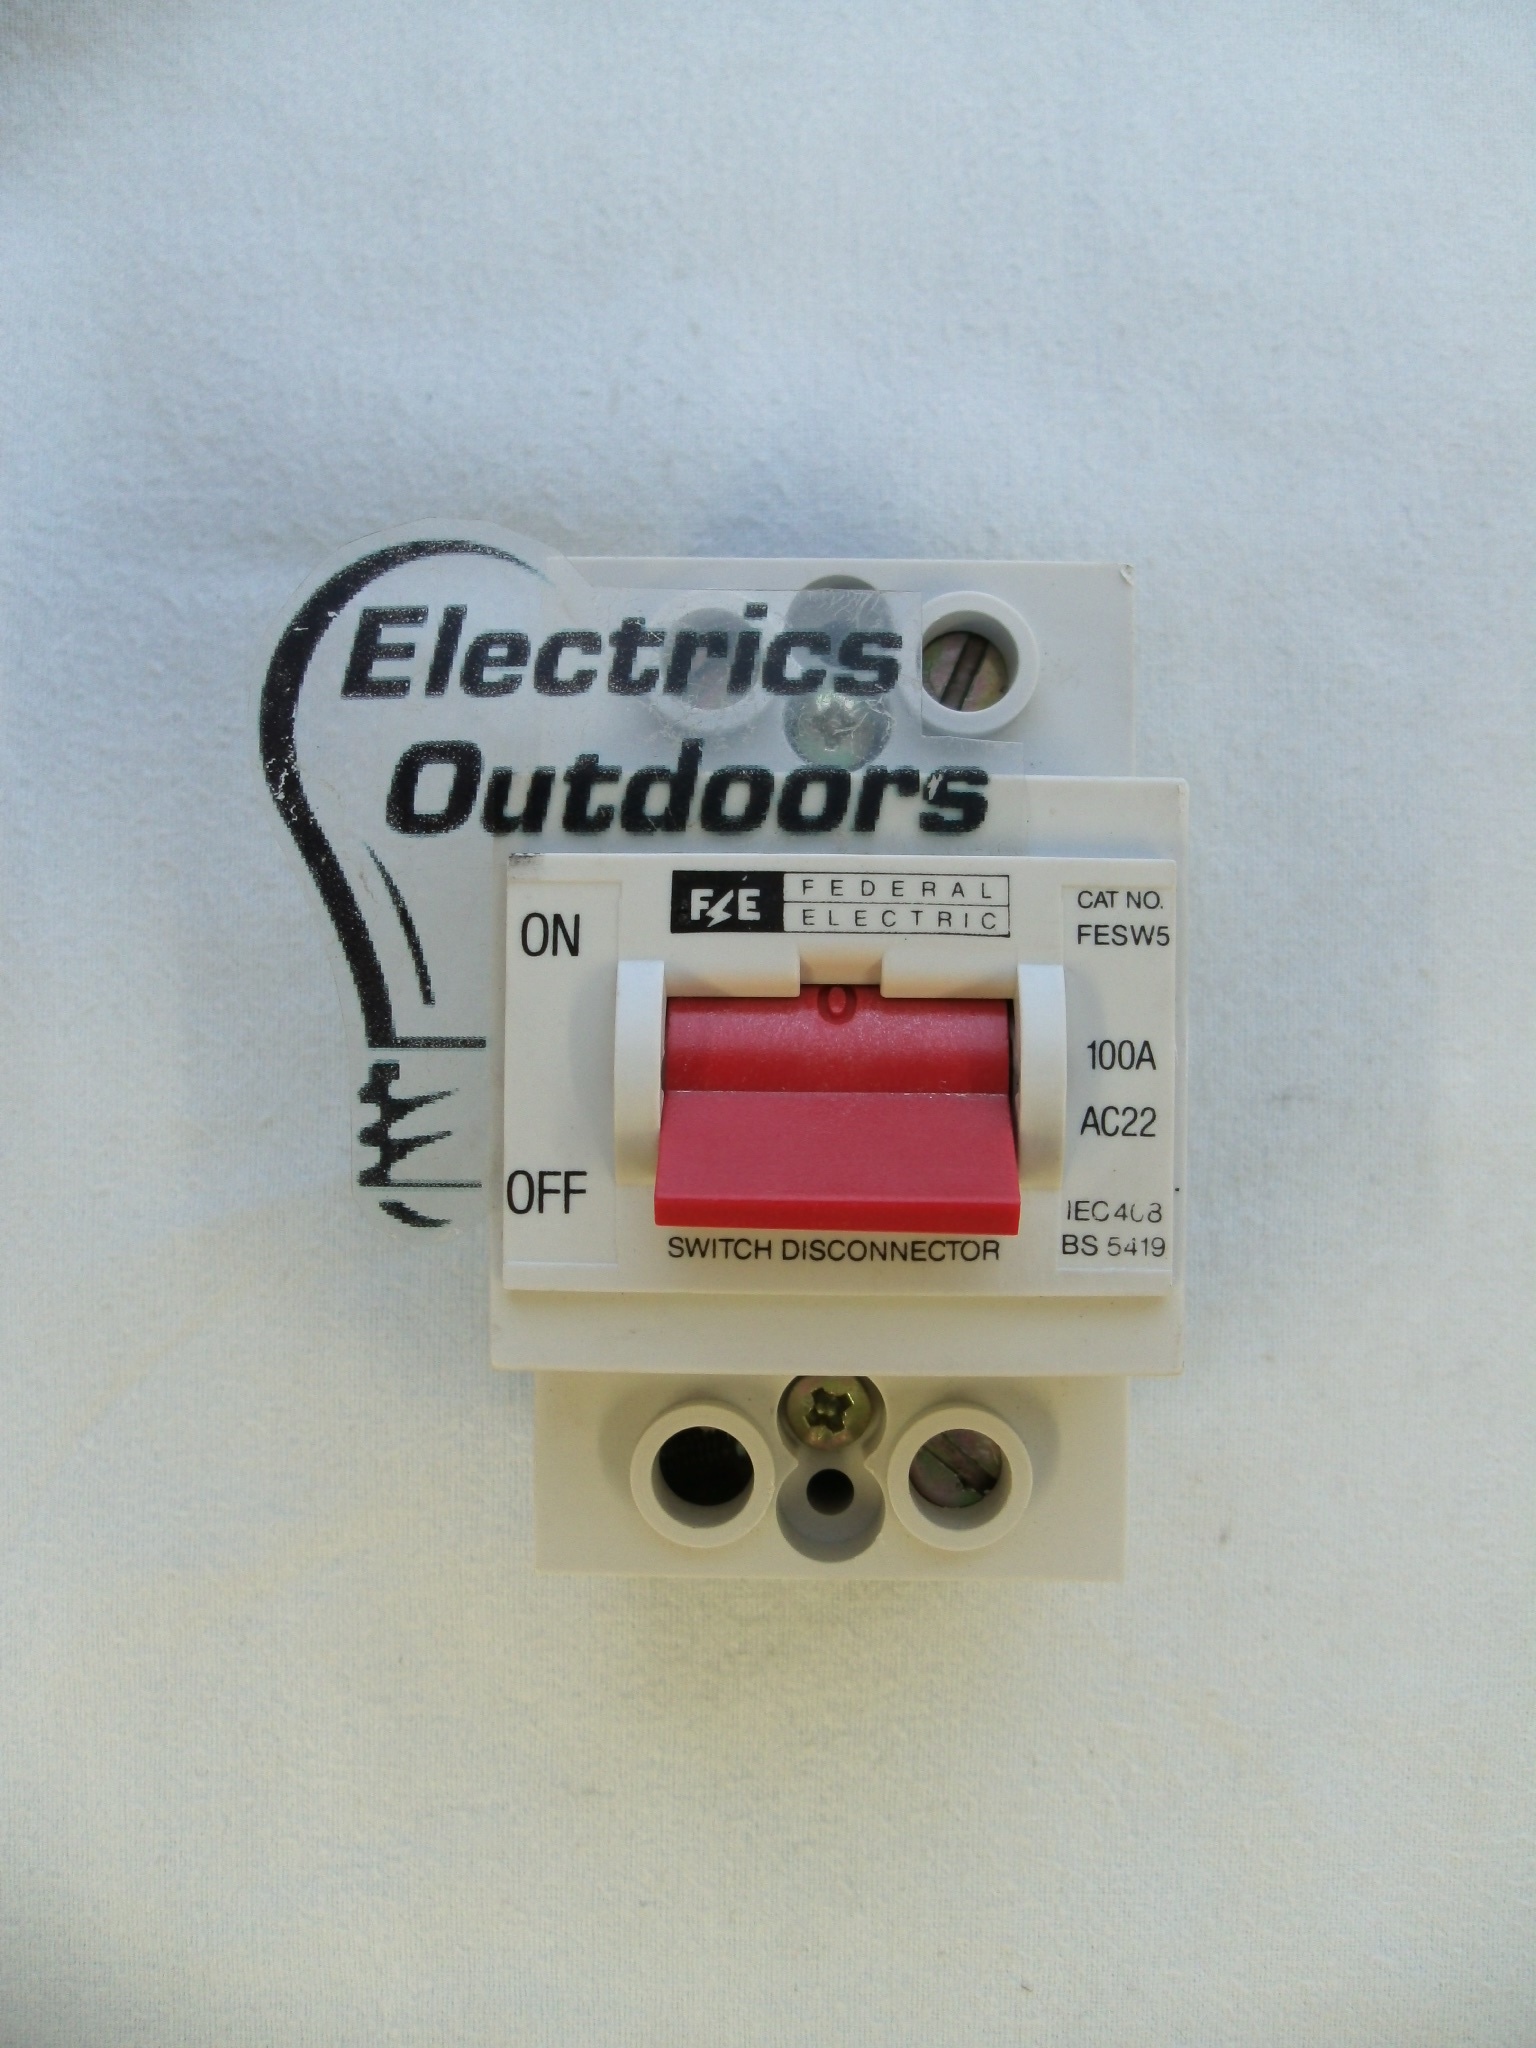 FEDERAL ELECTRIC 100 AMP DOUBLE POLE MAIN SWITCH DISCONNECTOR FESW5